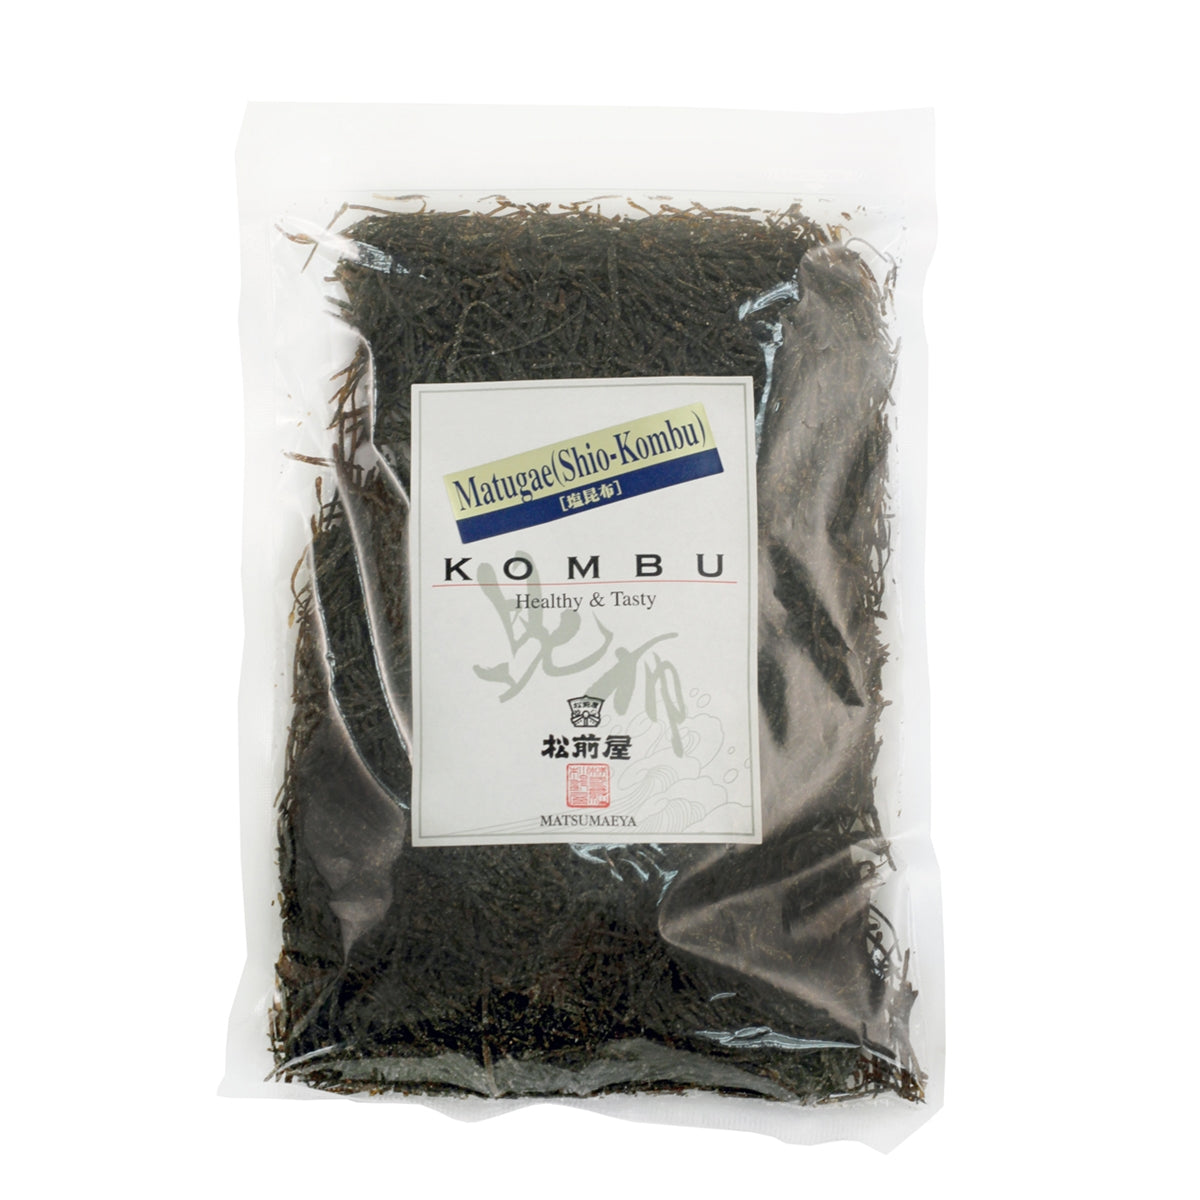 Shredded Shio Kombu - Salted Kelp 7.1 oz / 200g